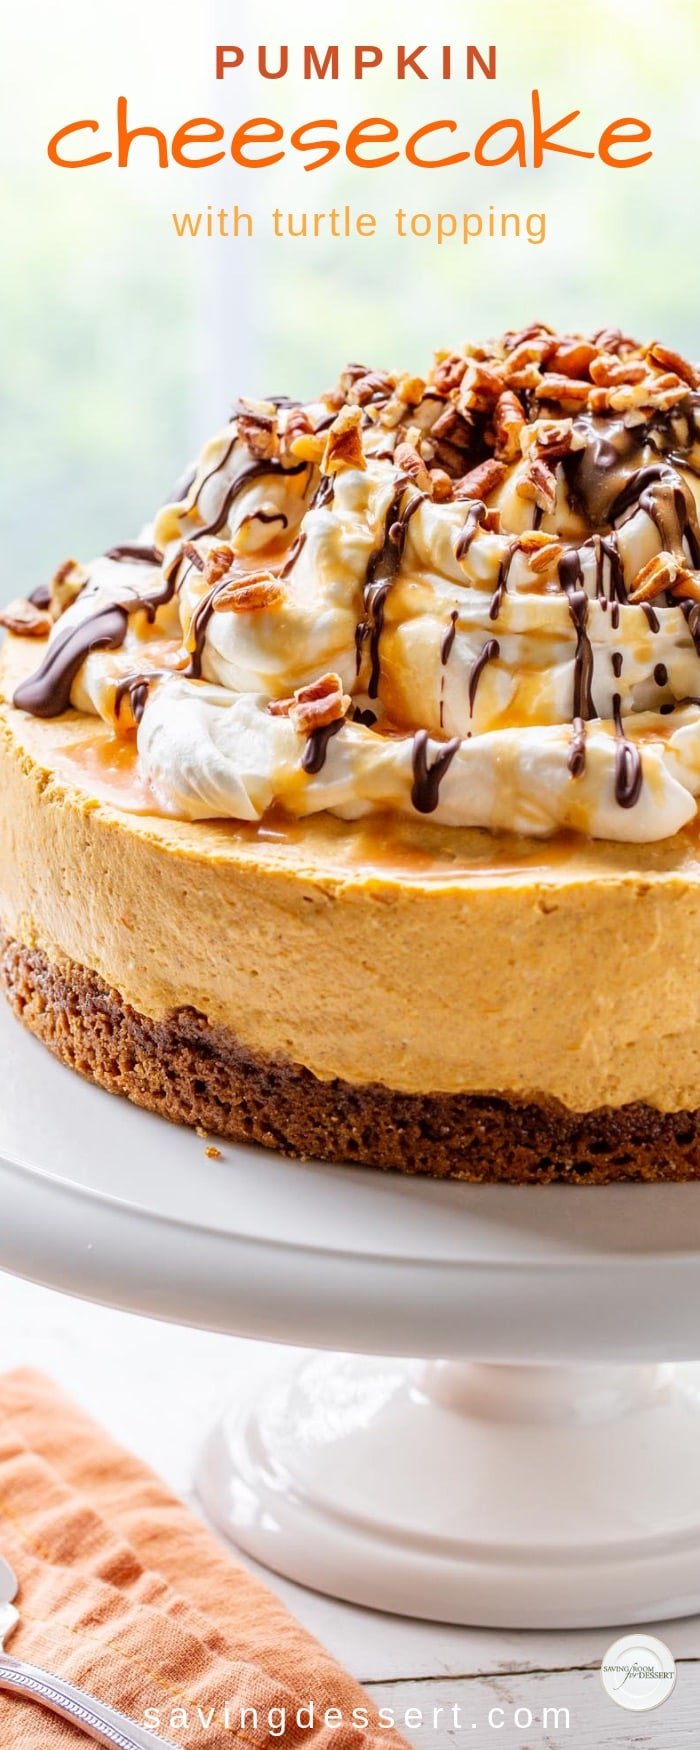 Change it up this year and thrill your holiday guests with this light and creamy Pumpkin Cheesecake with a no bake filling, a ginger snap crust and a decadent Turtle Topping. #savingroomfordessert #pumpkincheesecake #cheesecake #pumpkin #turtlecheesecake #nobakecheesecake #holidaydessert